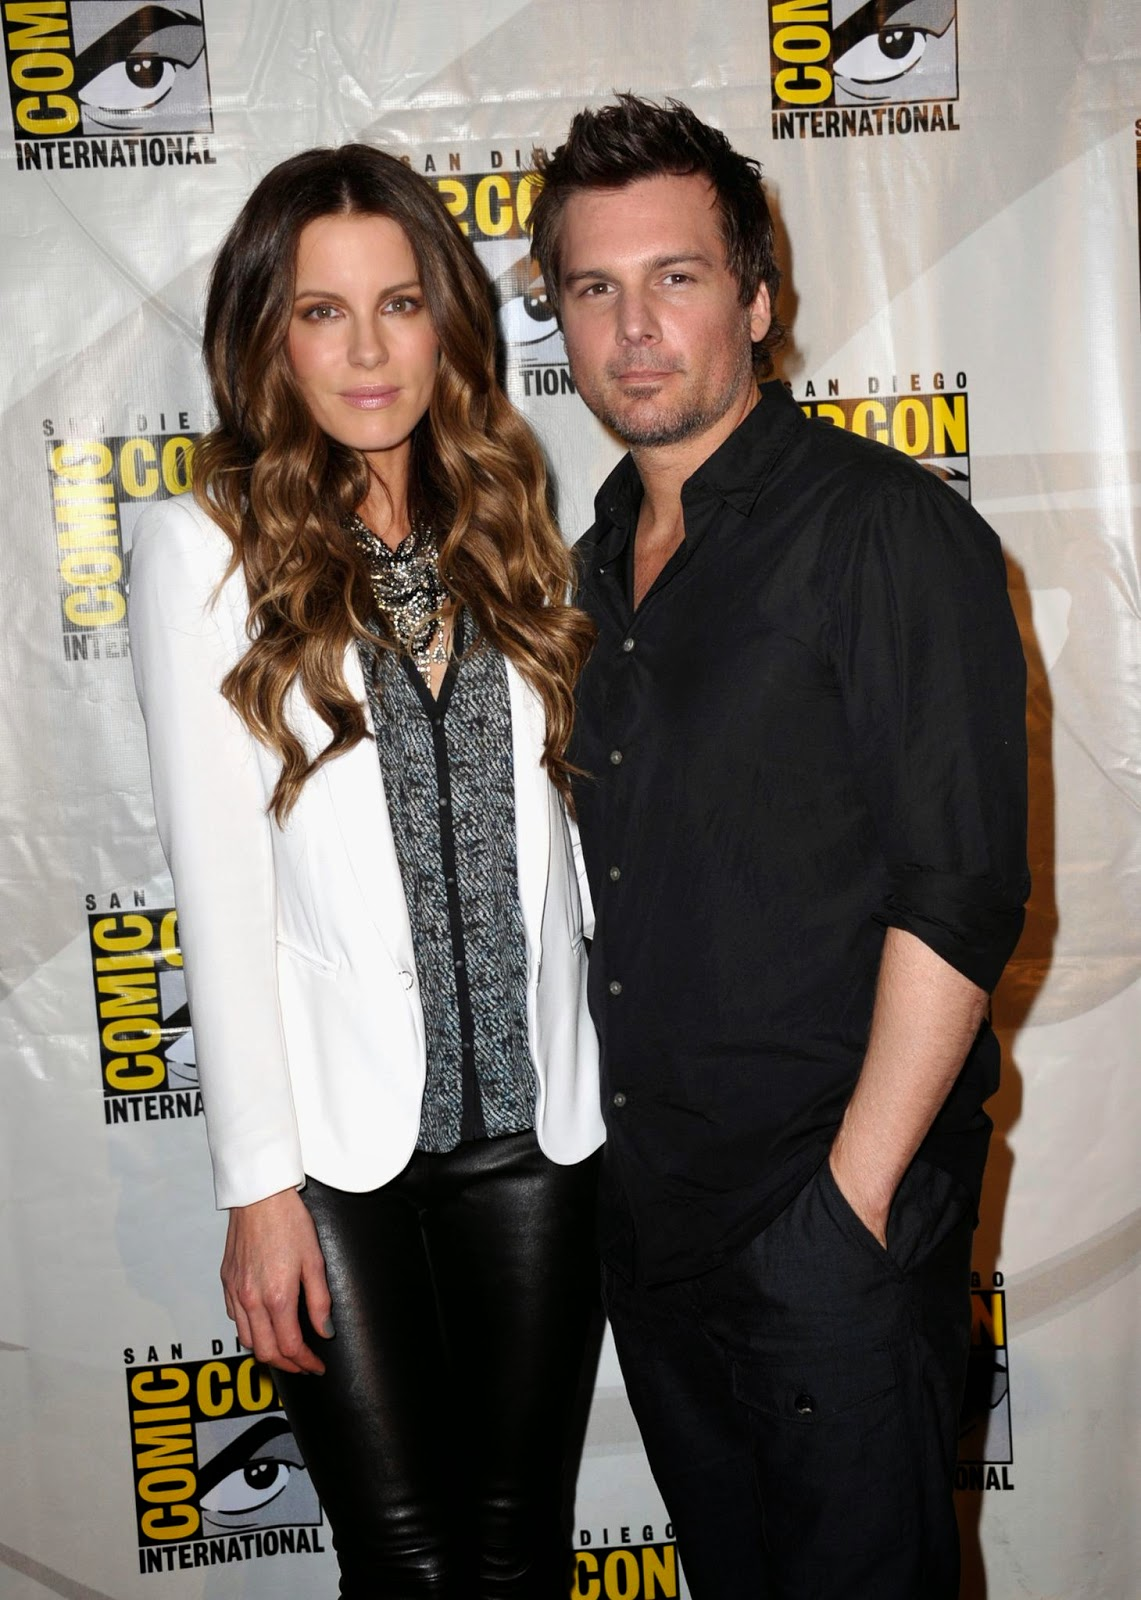 wiseman online hookup & dating Recently, it was revealed that kate and her husband len wiseman called it quits on their marriage after 11 years together so we wouldn't be taken aback to learn if the 42-year-old had started dating.